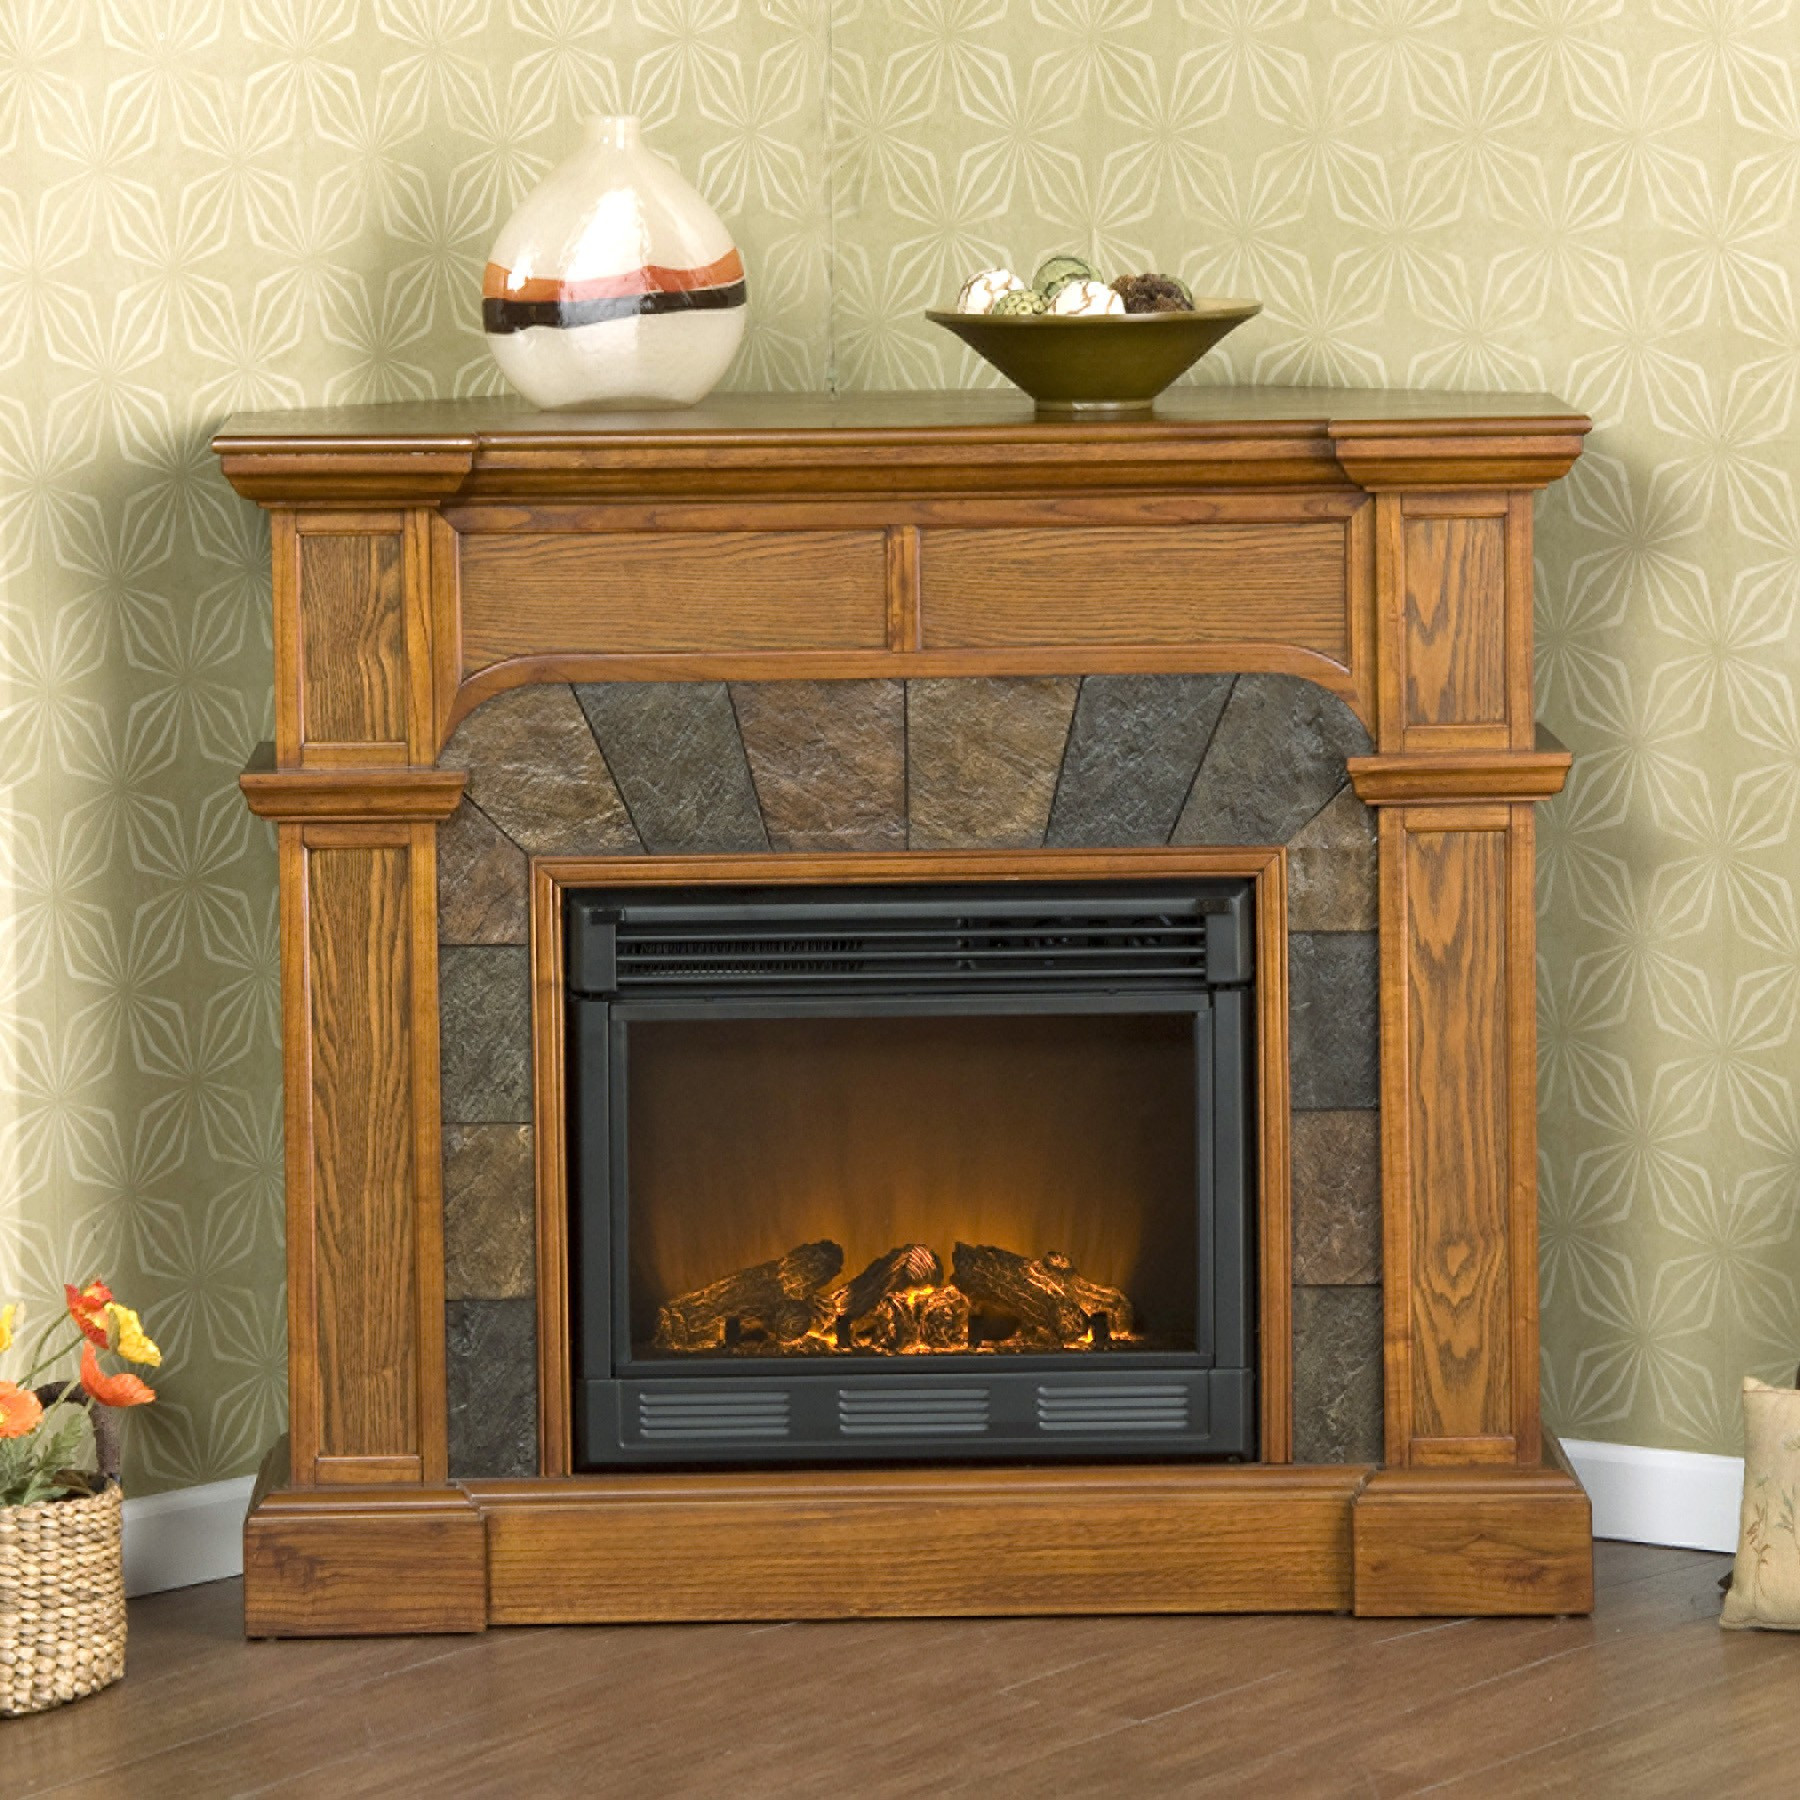 Best ideas about Small Electric Fireplace . Save or Pin Decorate Small Electric Fireplaces — Kokoazik Home Designs Now.